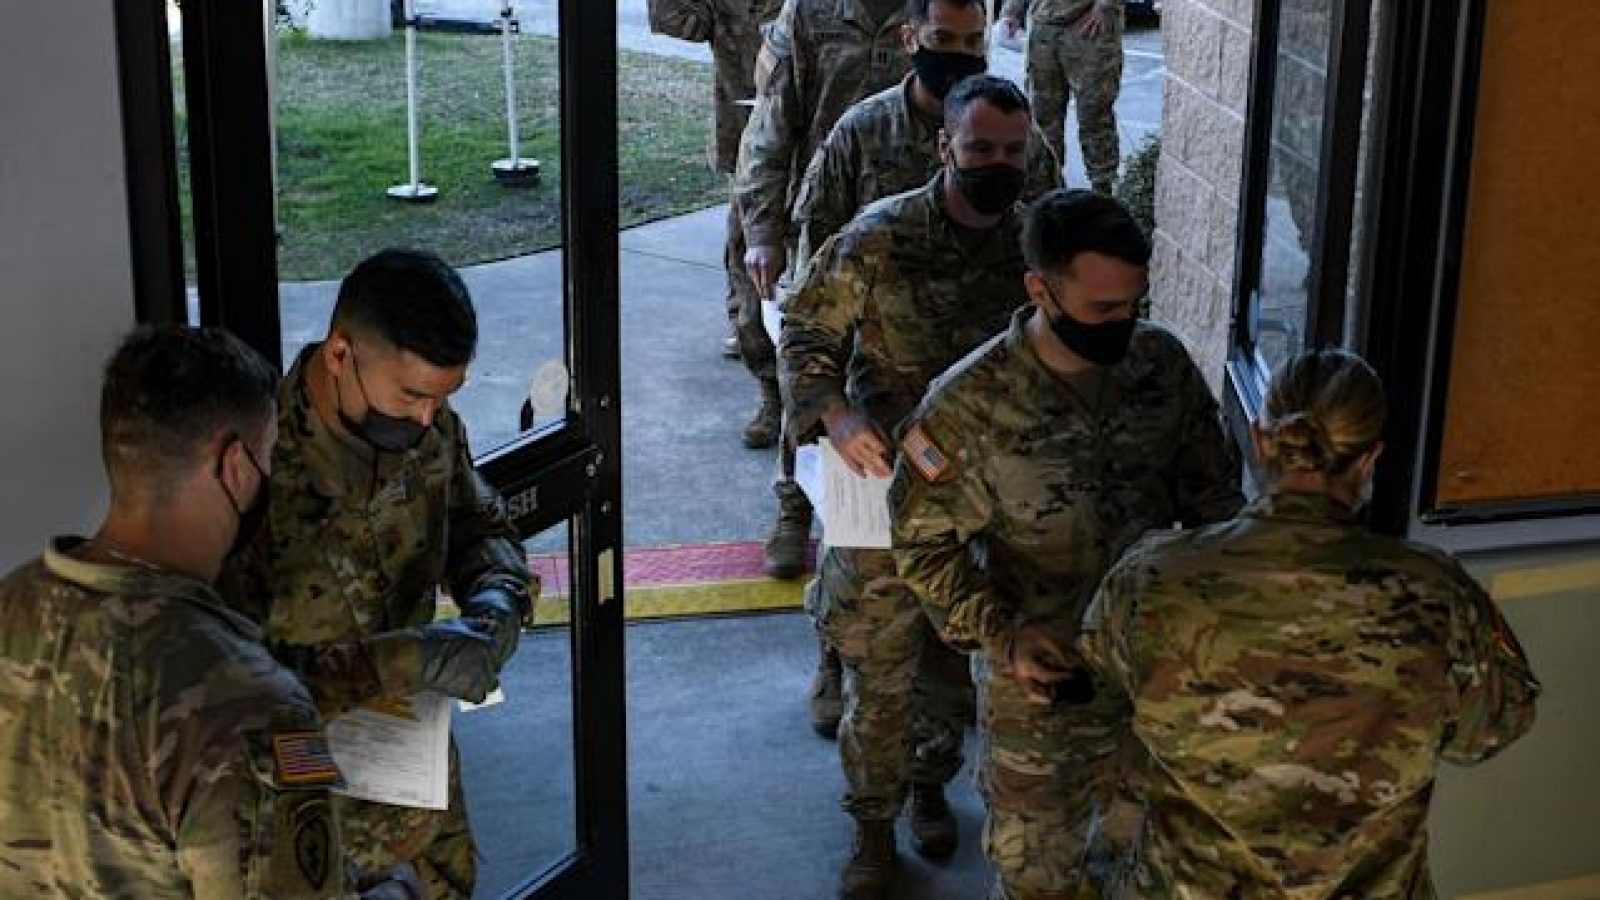 Members of the U.S. military in green camouflage uniforms line up through a door